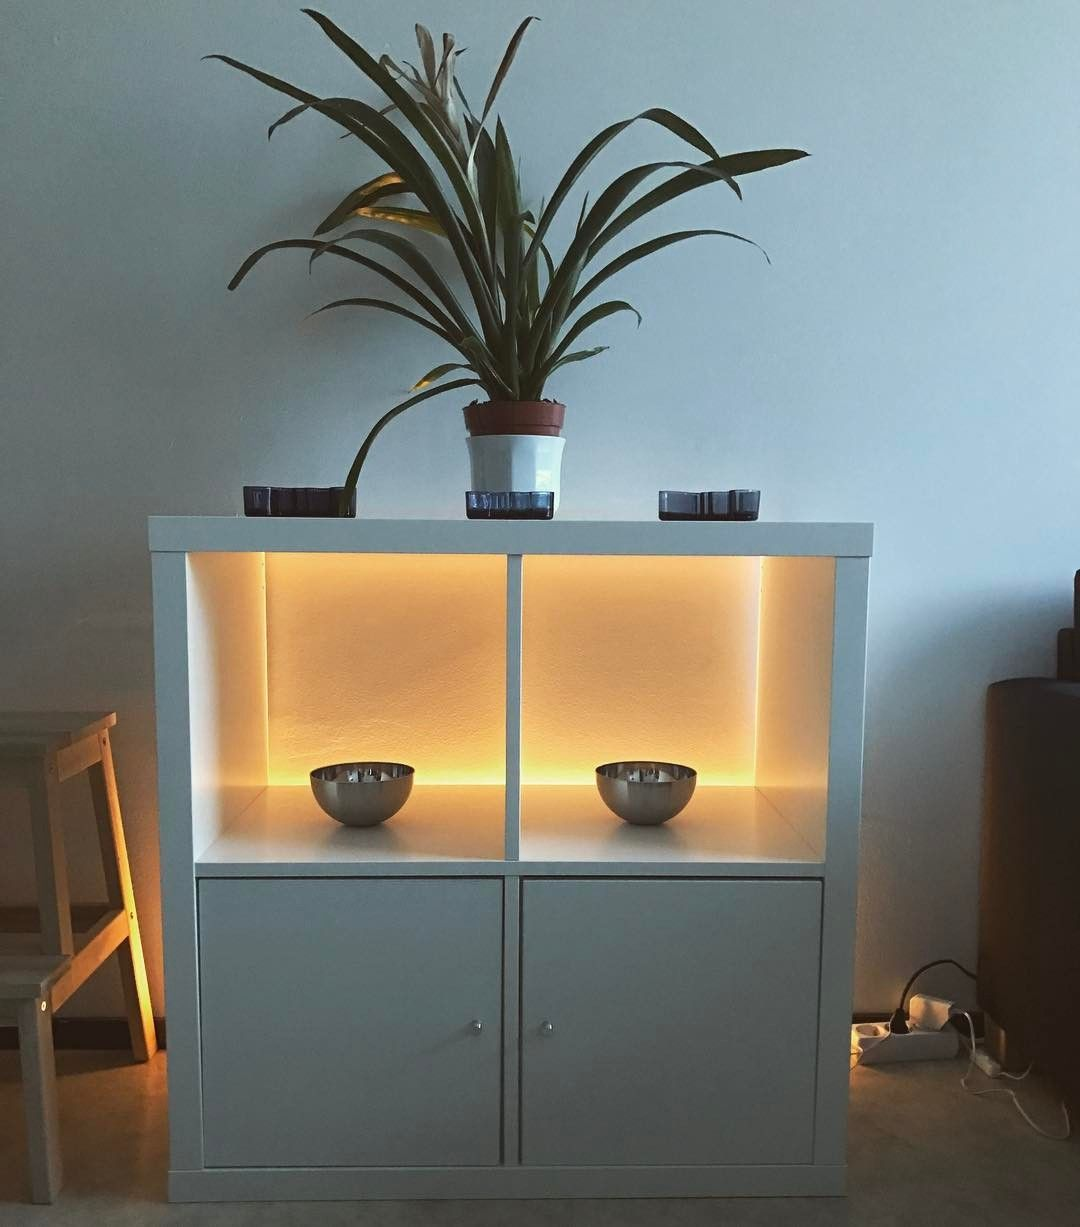 ikea strip lighting itu0027s quite nice with lights or what do you think lighting41 lighting